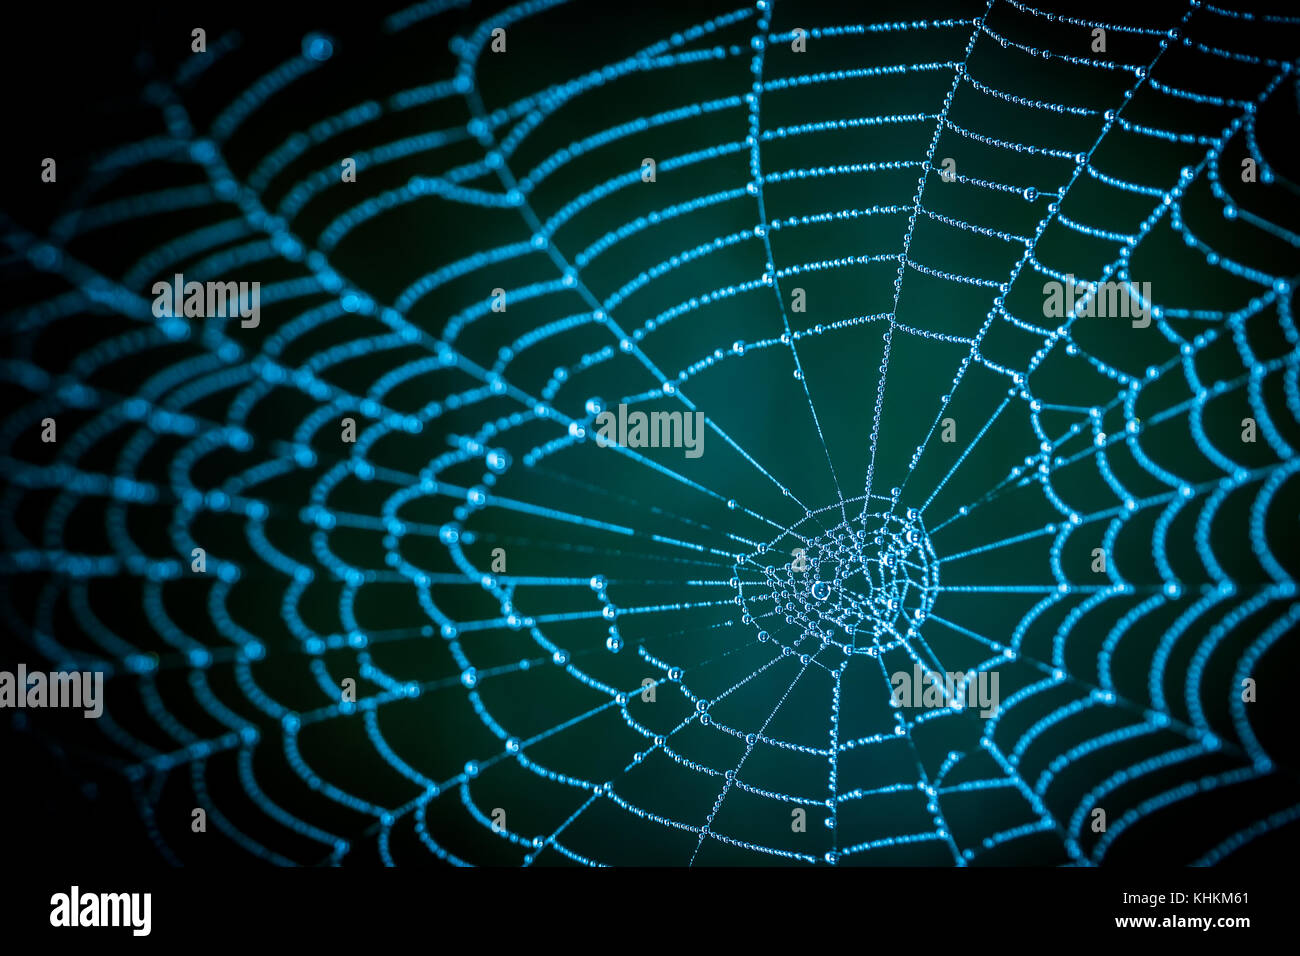 Detail of spooky cobweb on a dark night background. Blue texture from the spider web with dew drops. - Stock Image